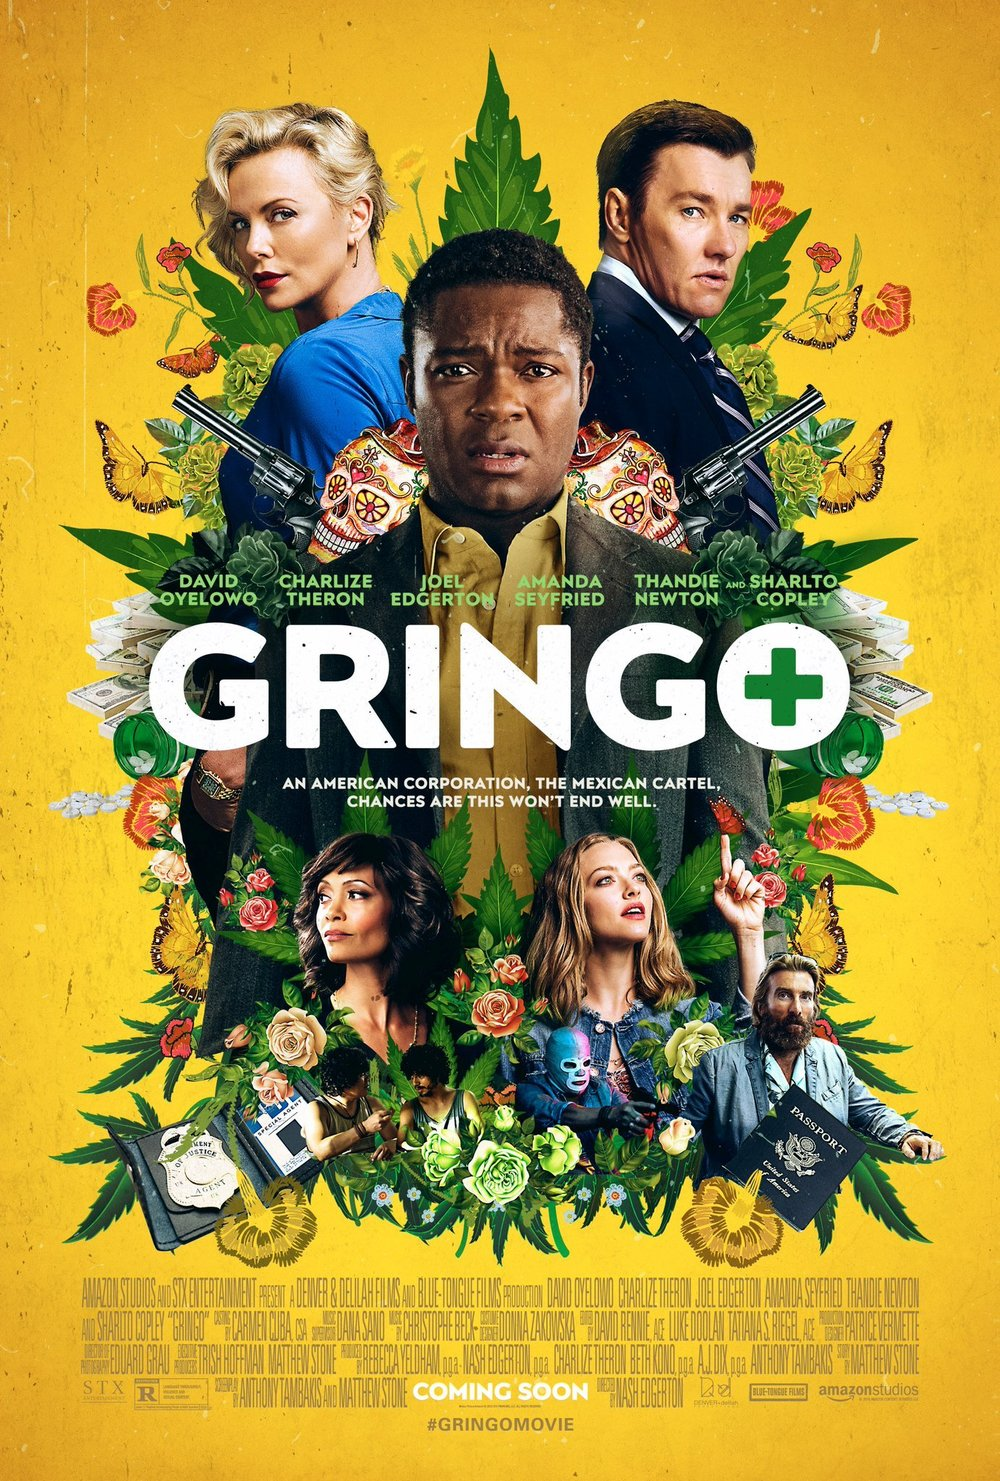 wild-red-band-trailer-for-the-marijuana-dark-comedy-gringo-with-charlize-theron-and-david-oyelowo4